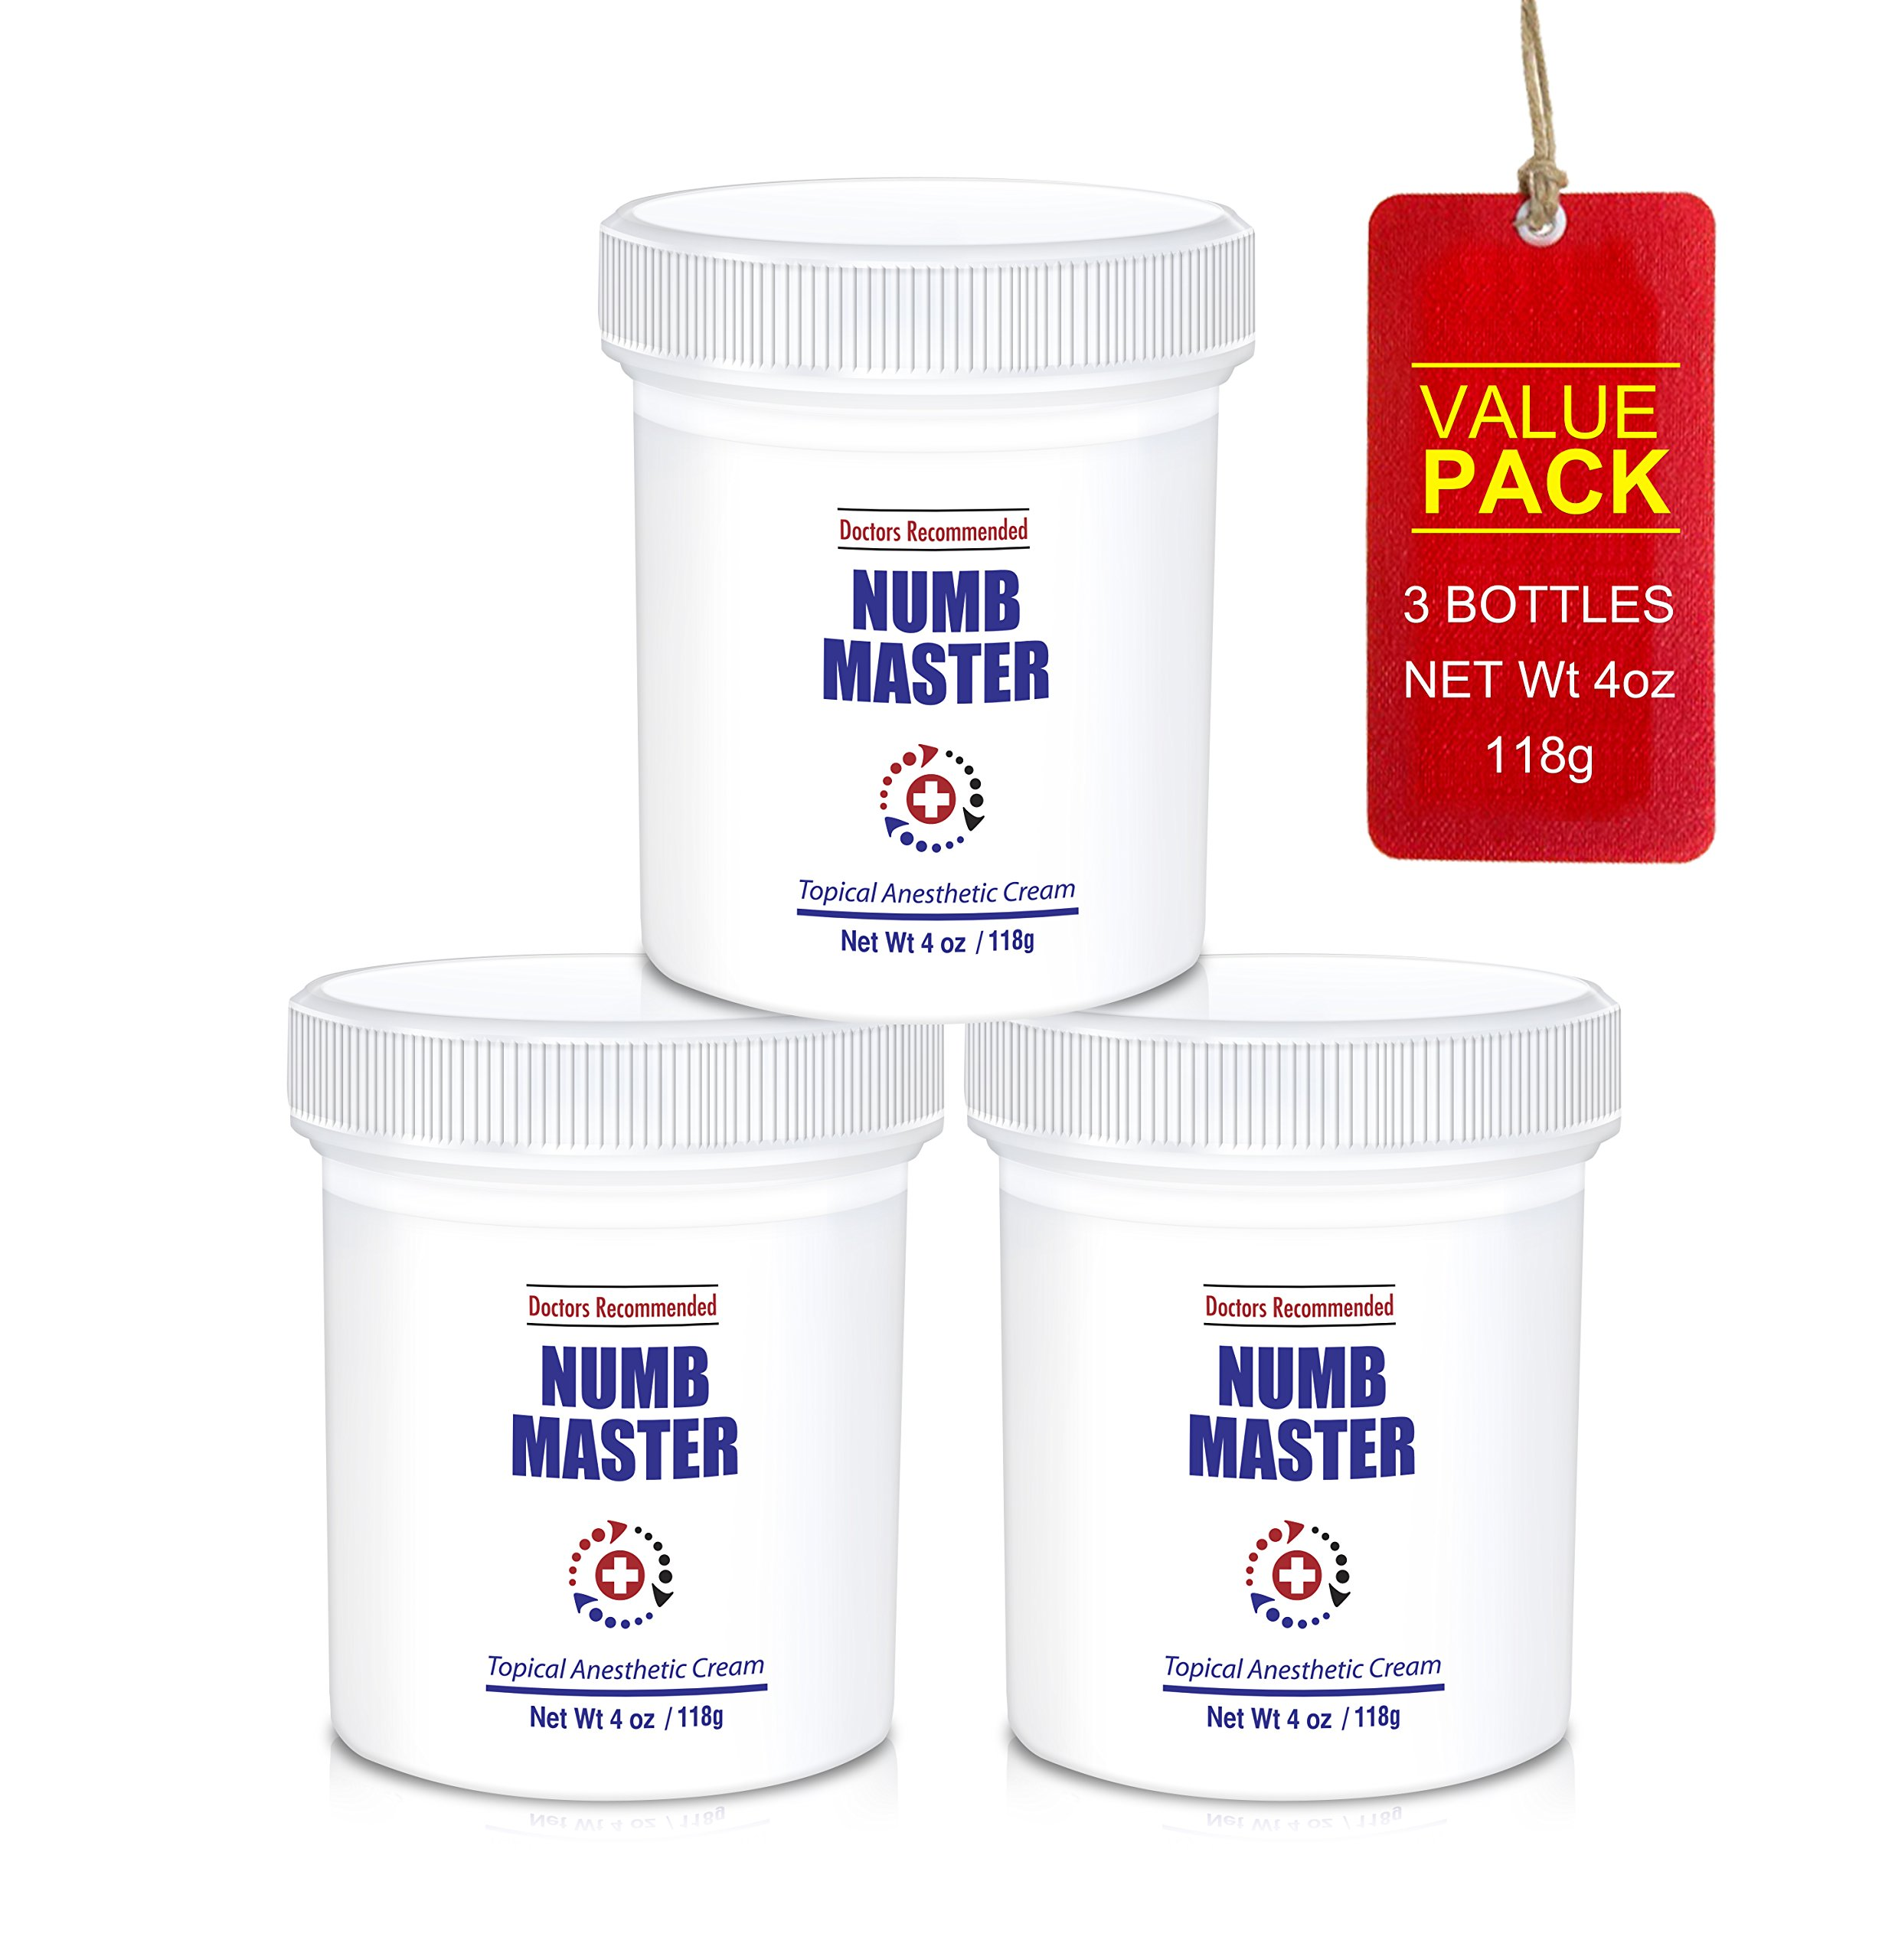 Numb Master 5% Topical Anesthetic Lidocaine Cream, Made in USA, Fast Penetration, Liposmal lidocaine, Non-oily (12 oz (3 jars x 4oz))